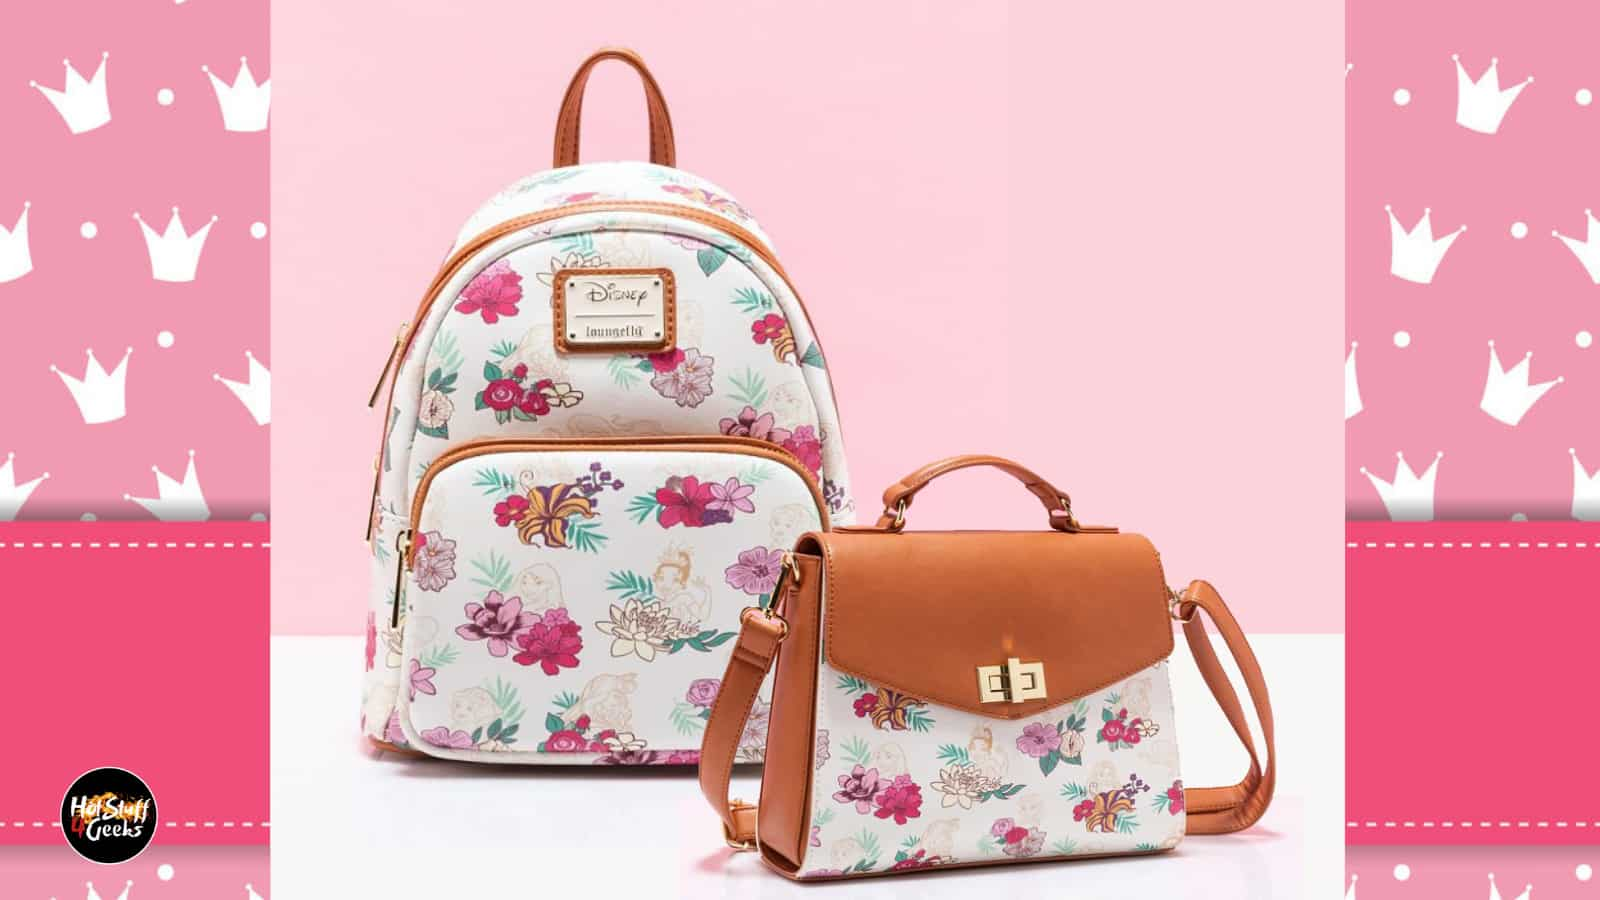 Loungefly Disney Princess Floral Crossbody Purse and Mini Backpack